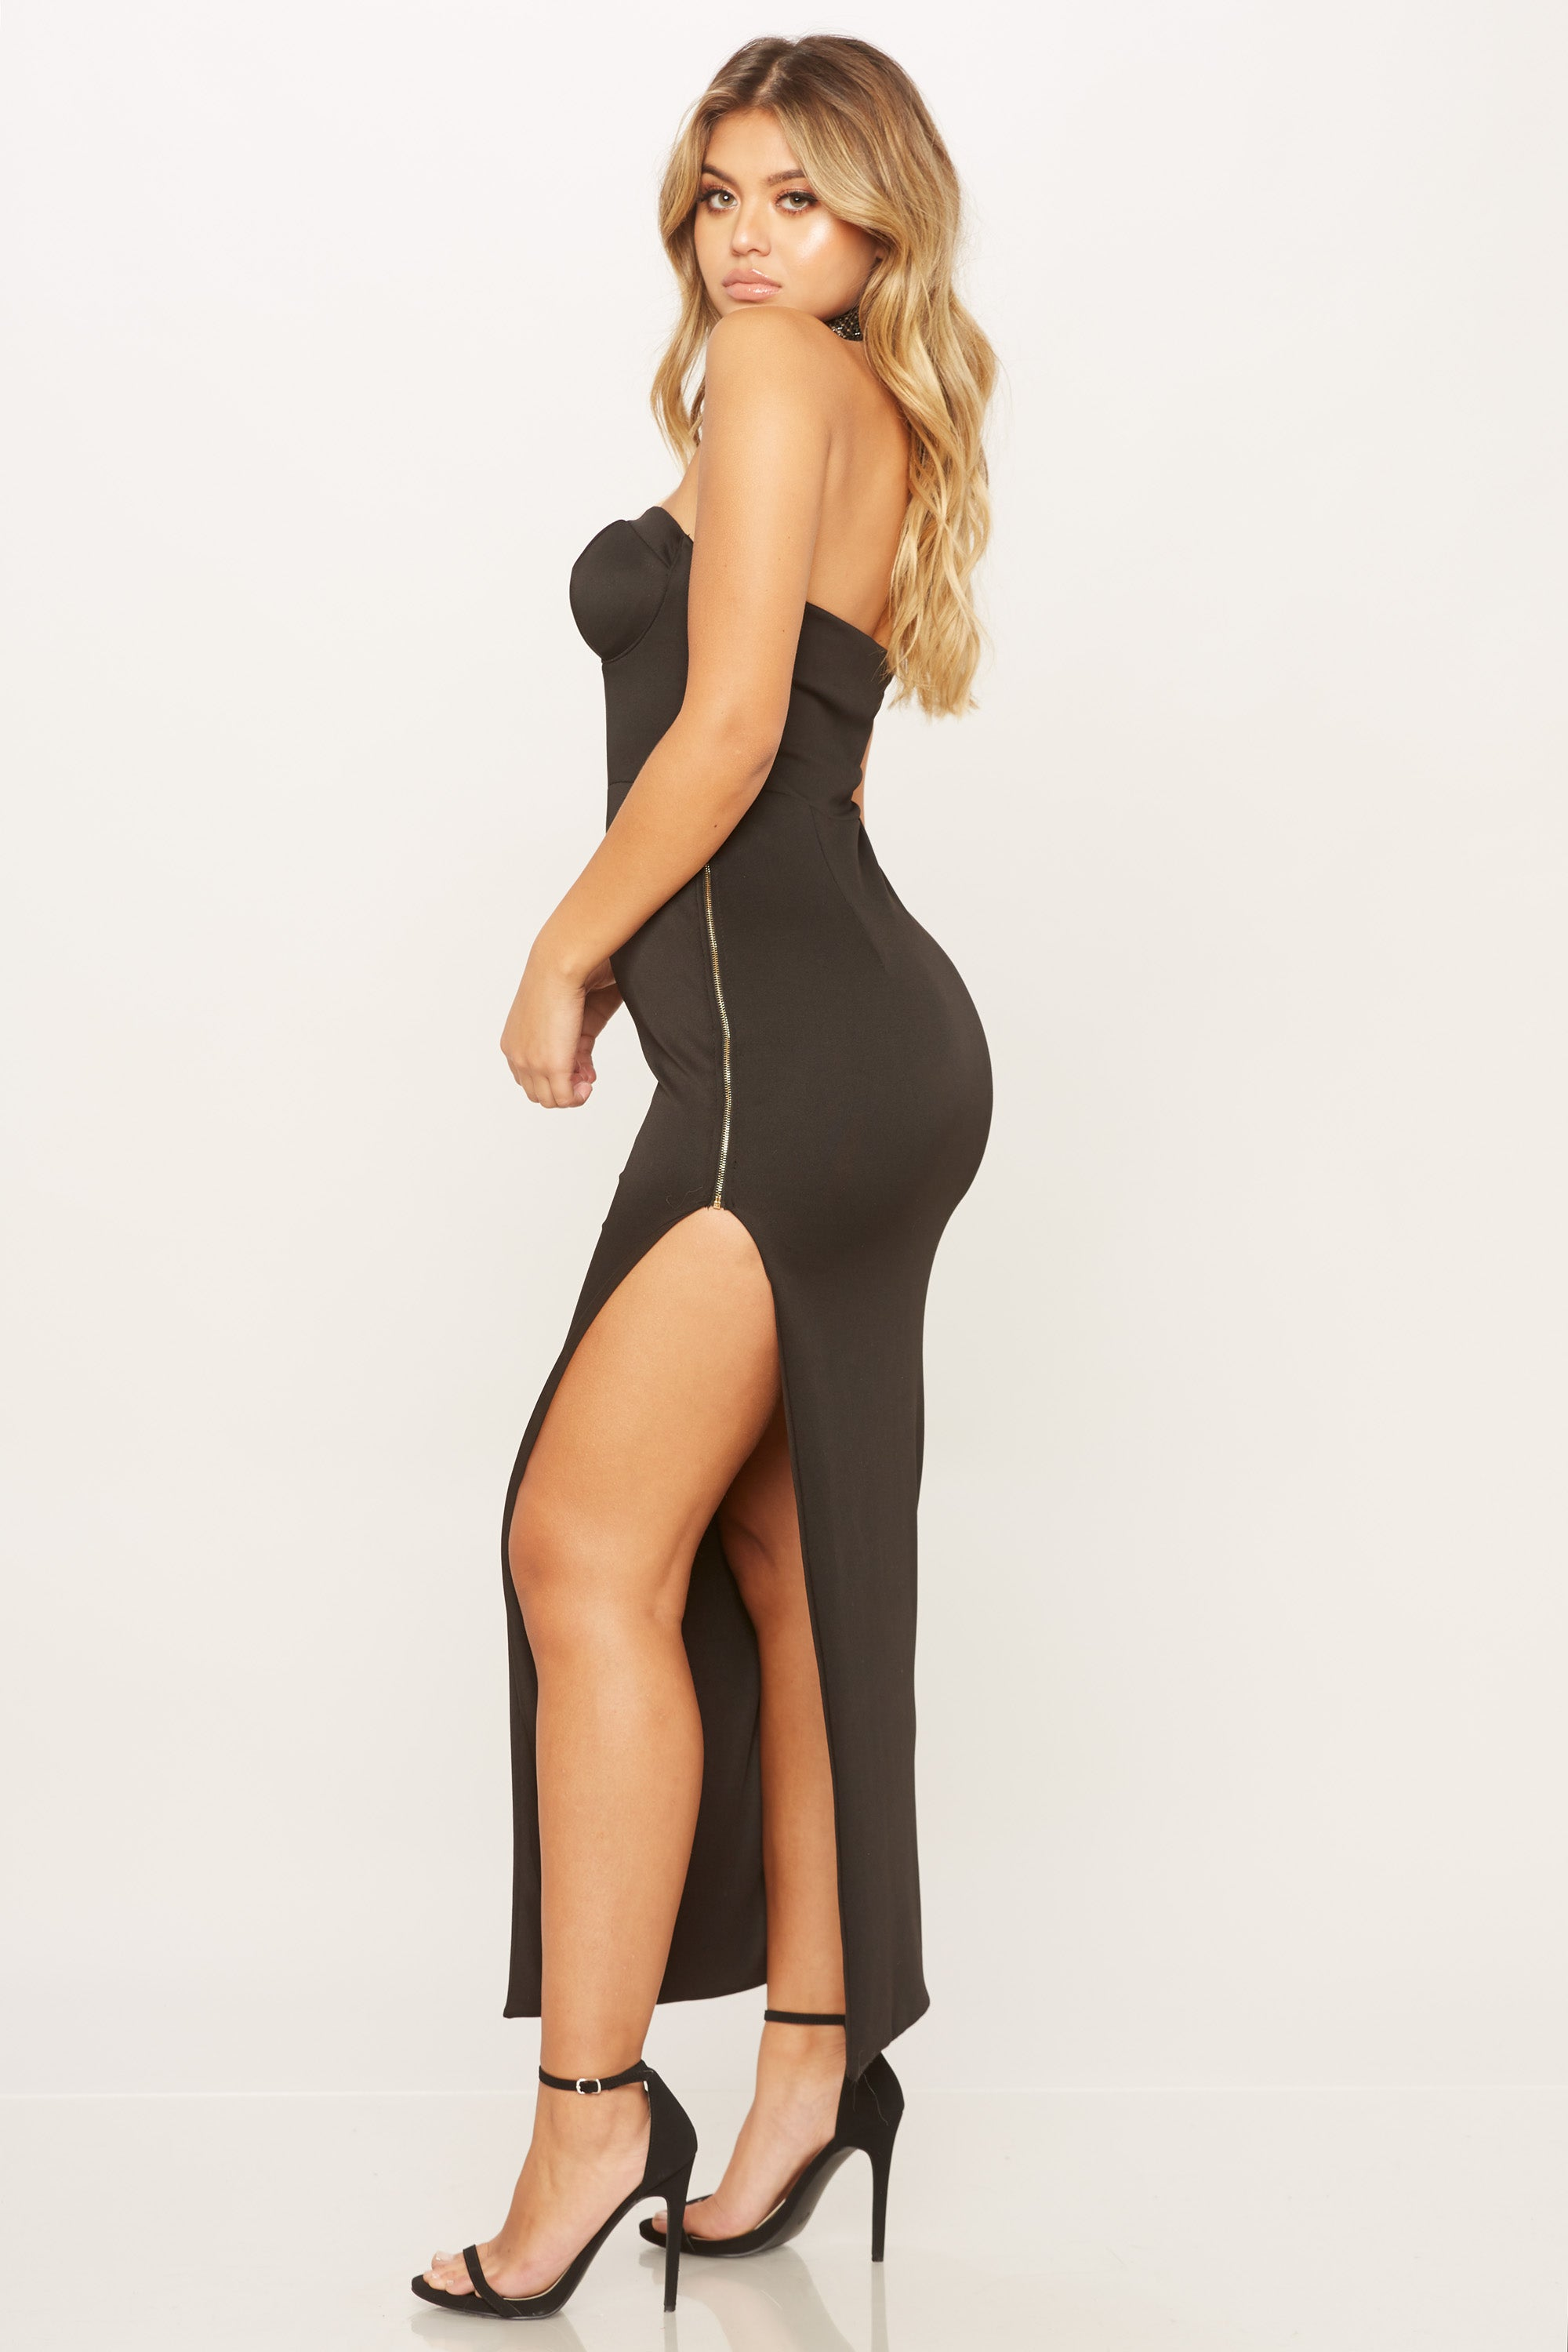 Stella Dress - HoneyBum